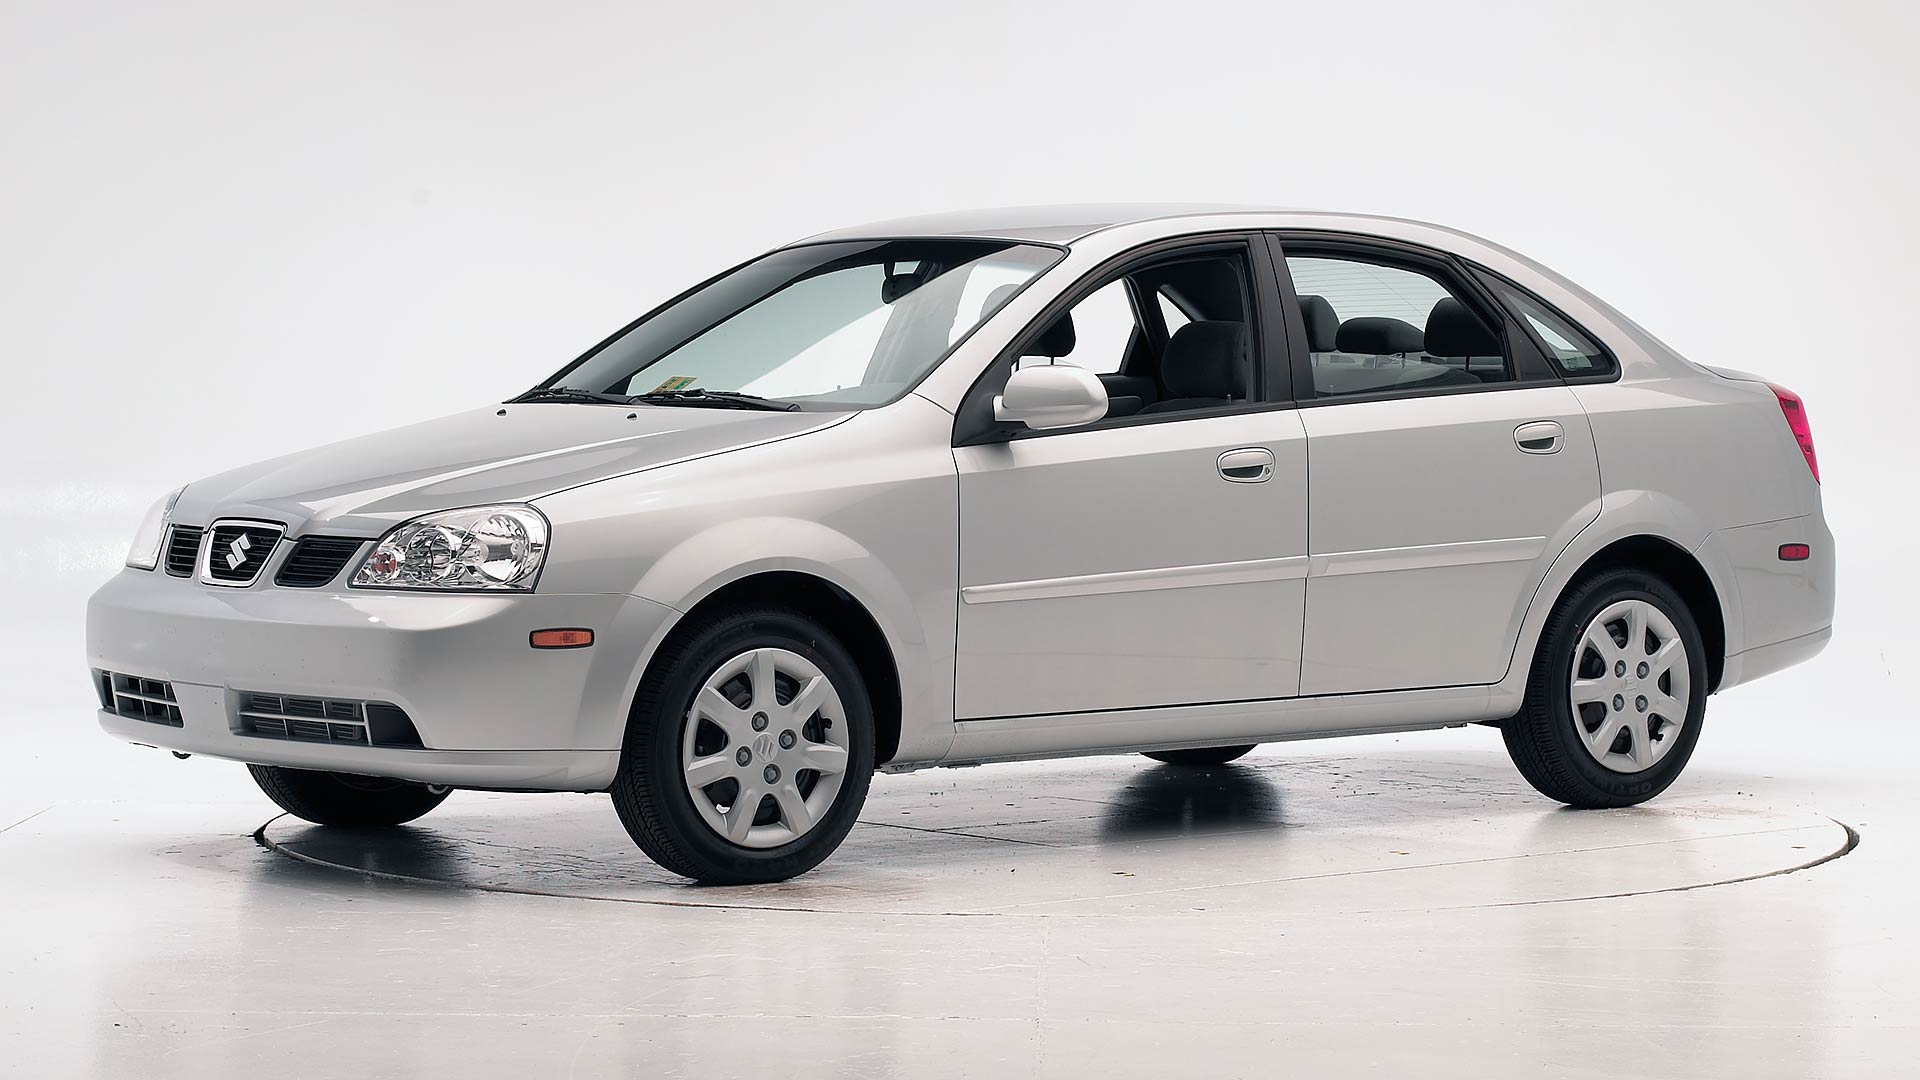 2007 Suzuki Forenza 4-door sedan